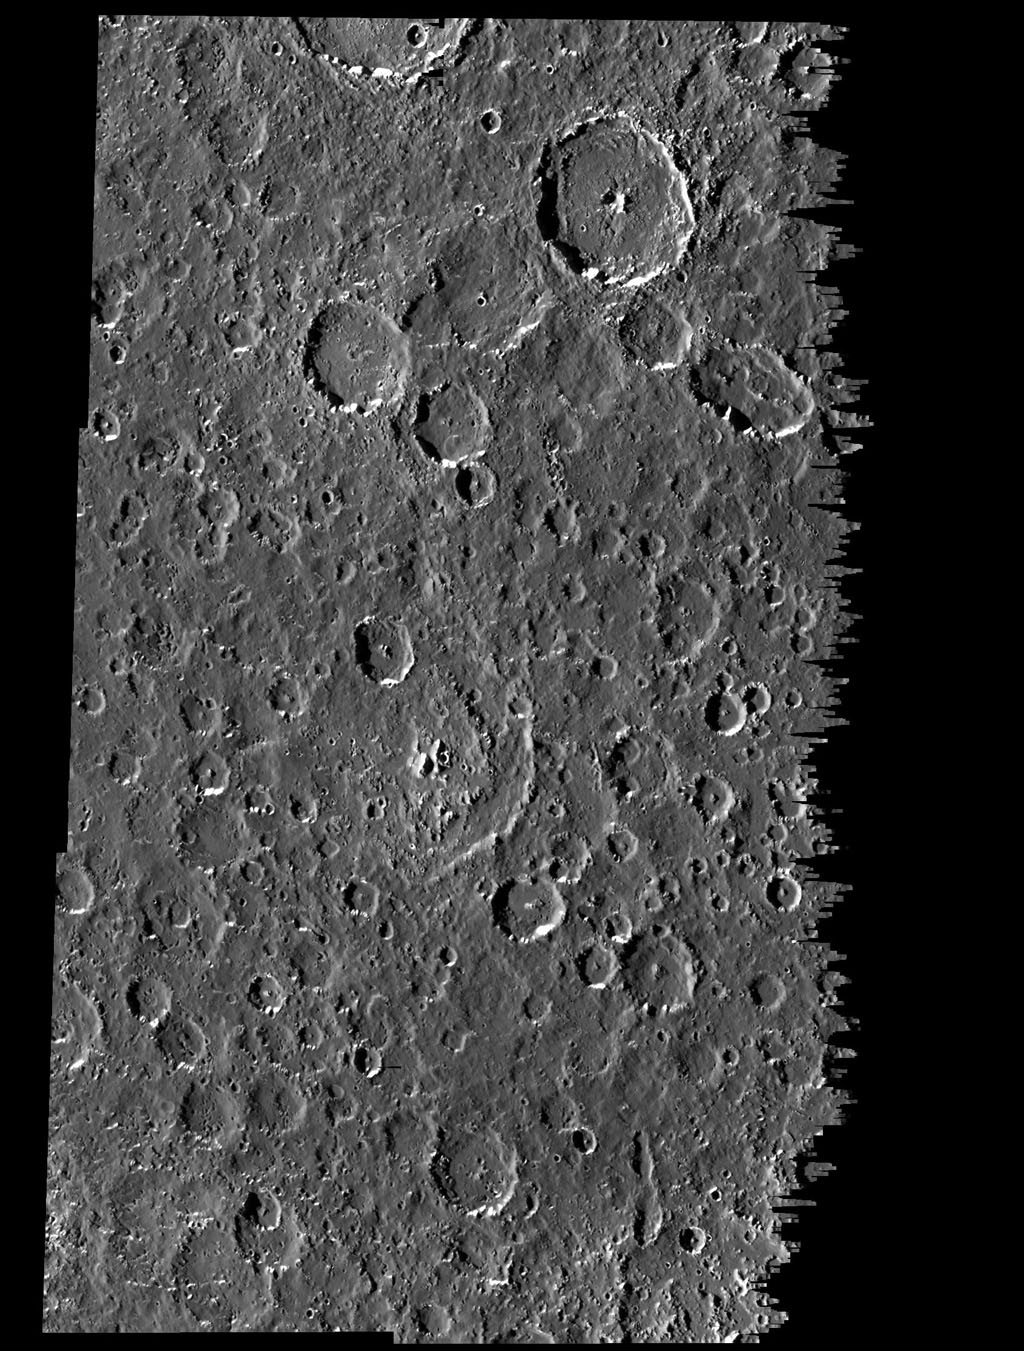 This mosaic covers part of the equatorial region of Jupiter's moon, Callisto. The mosaic combines six separate image frames obtained by the solid state imaging (CCD) system on NASA's Galileo spacecraft during its ninth orbit around Jupiter.